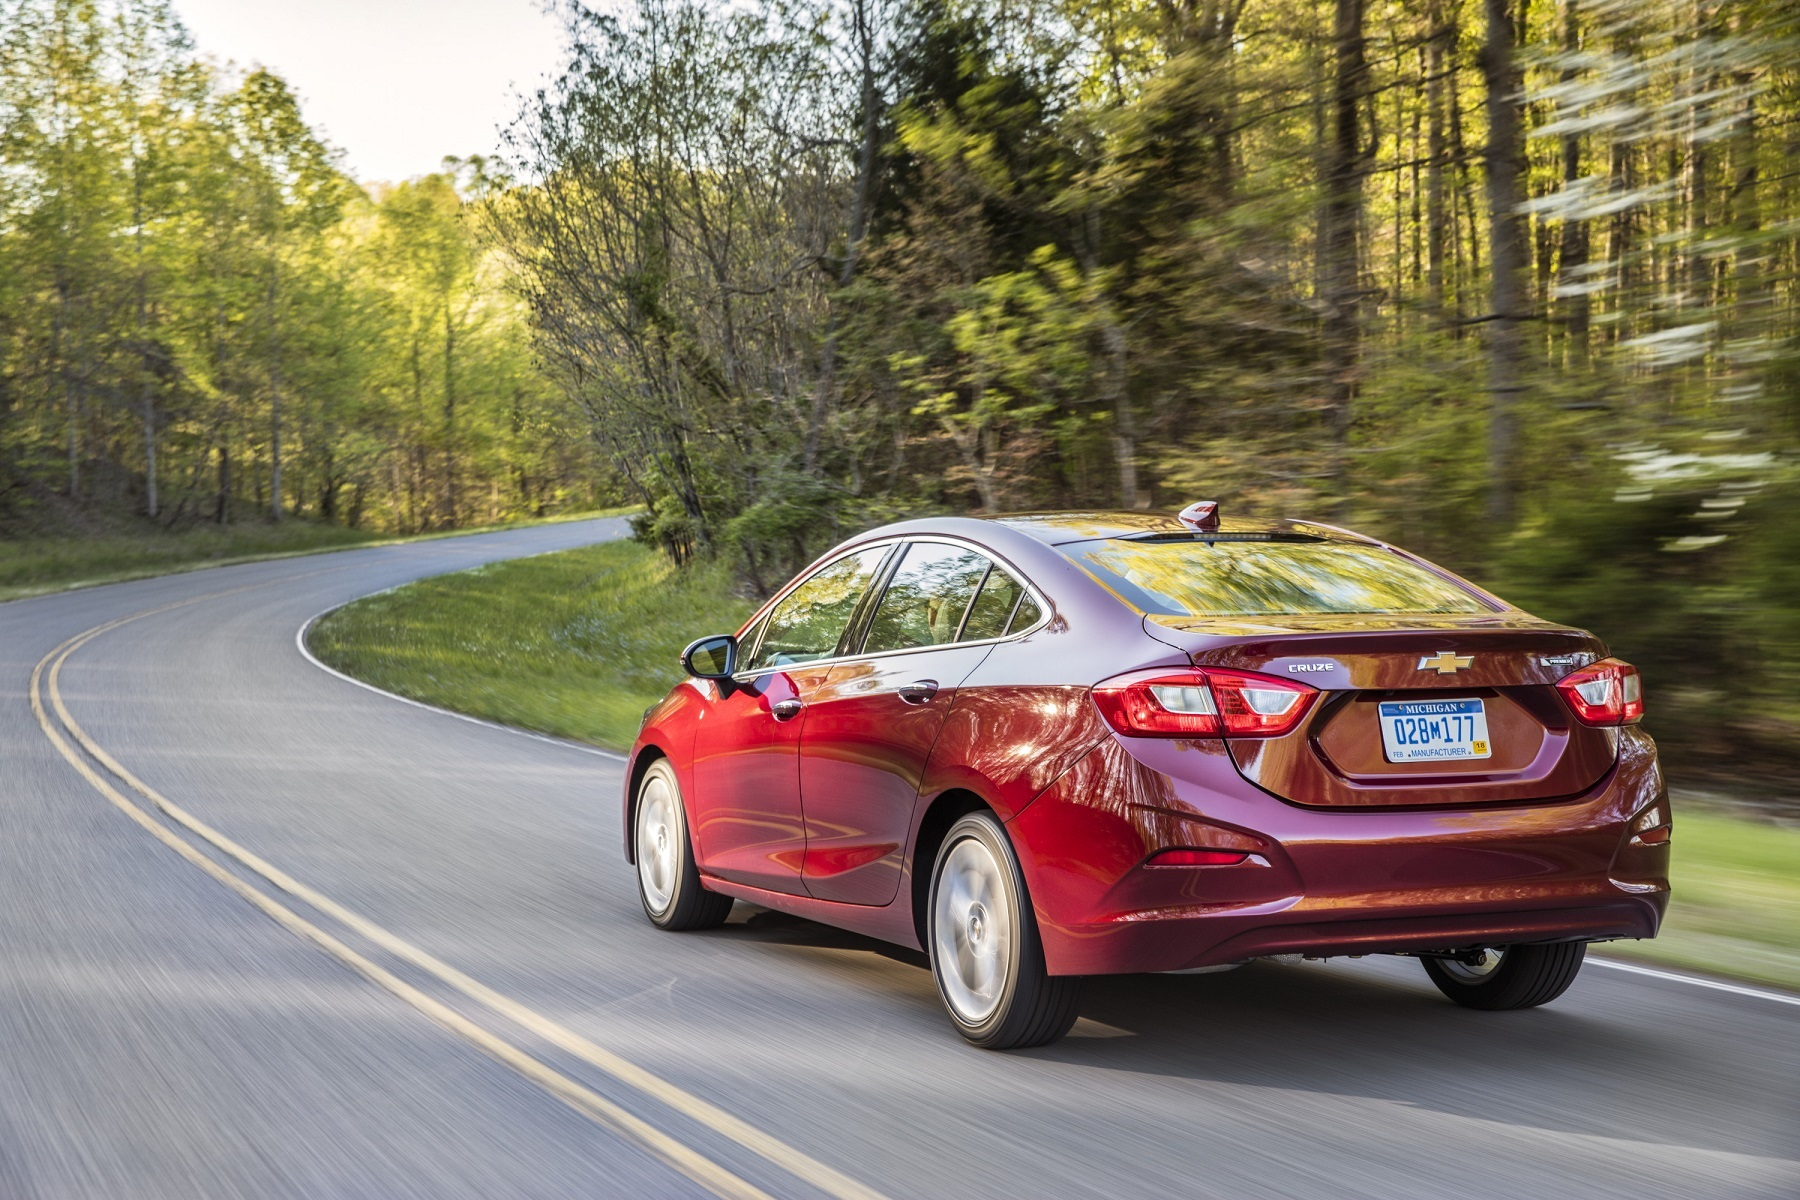 2016 Chevy Cruze makes big leaps in power, appeal